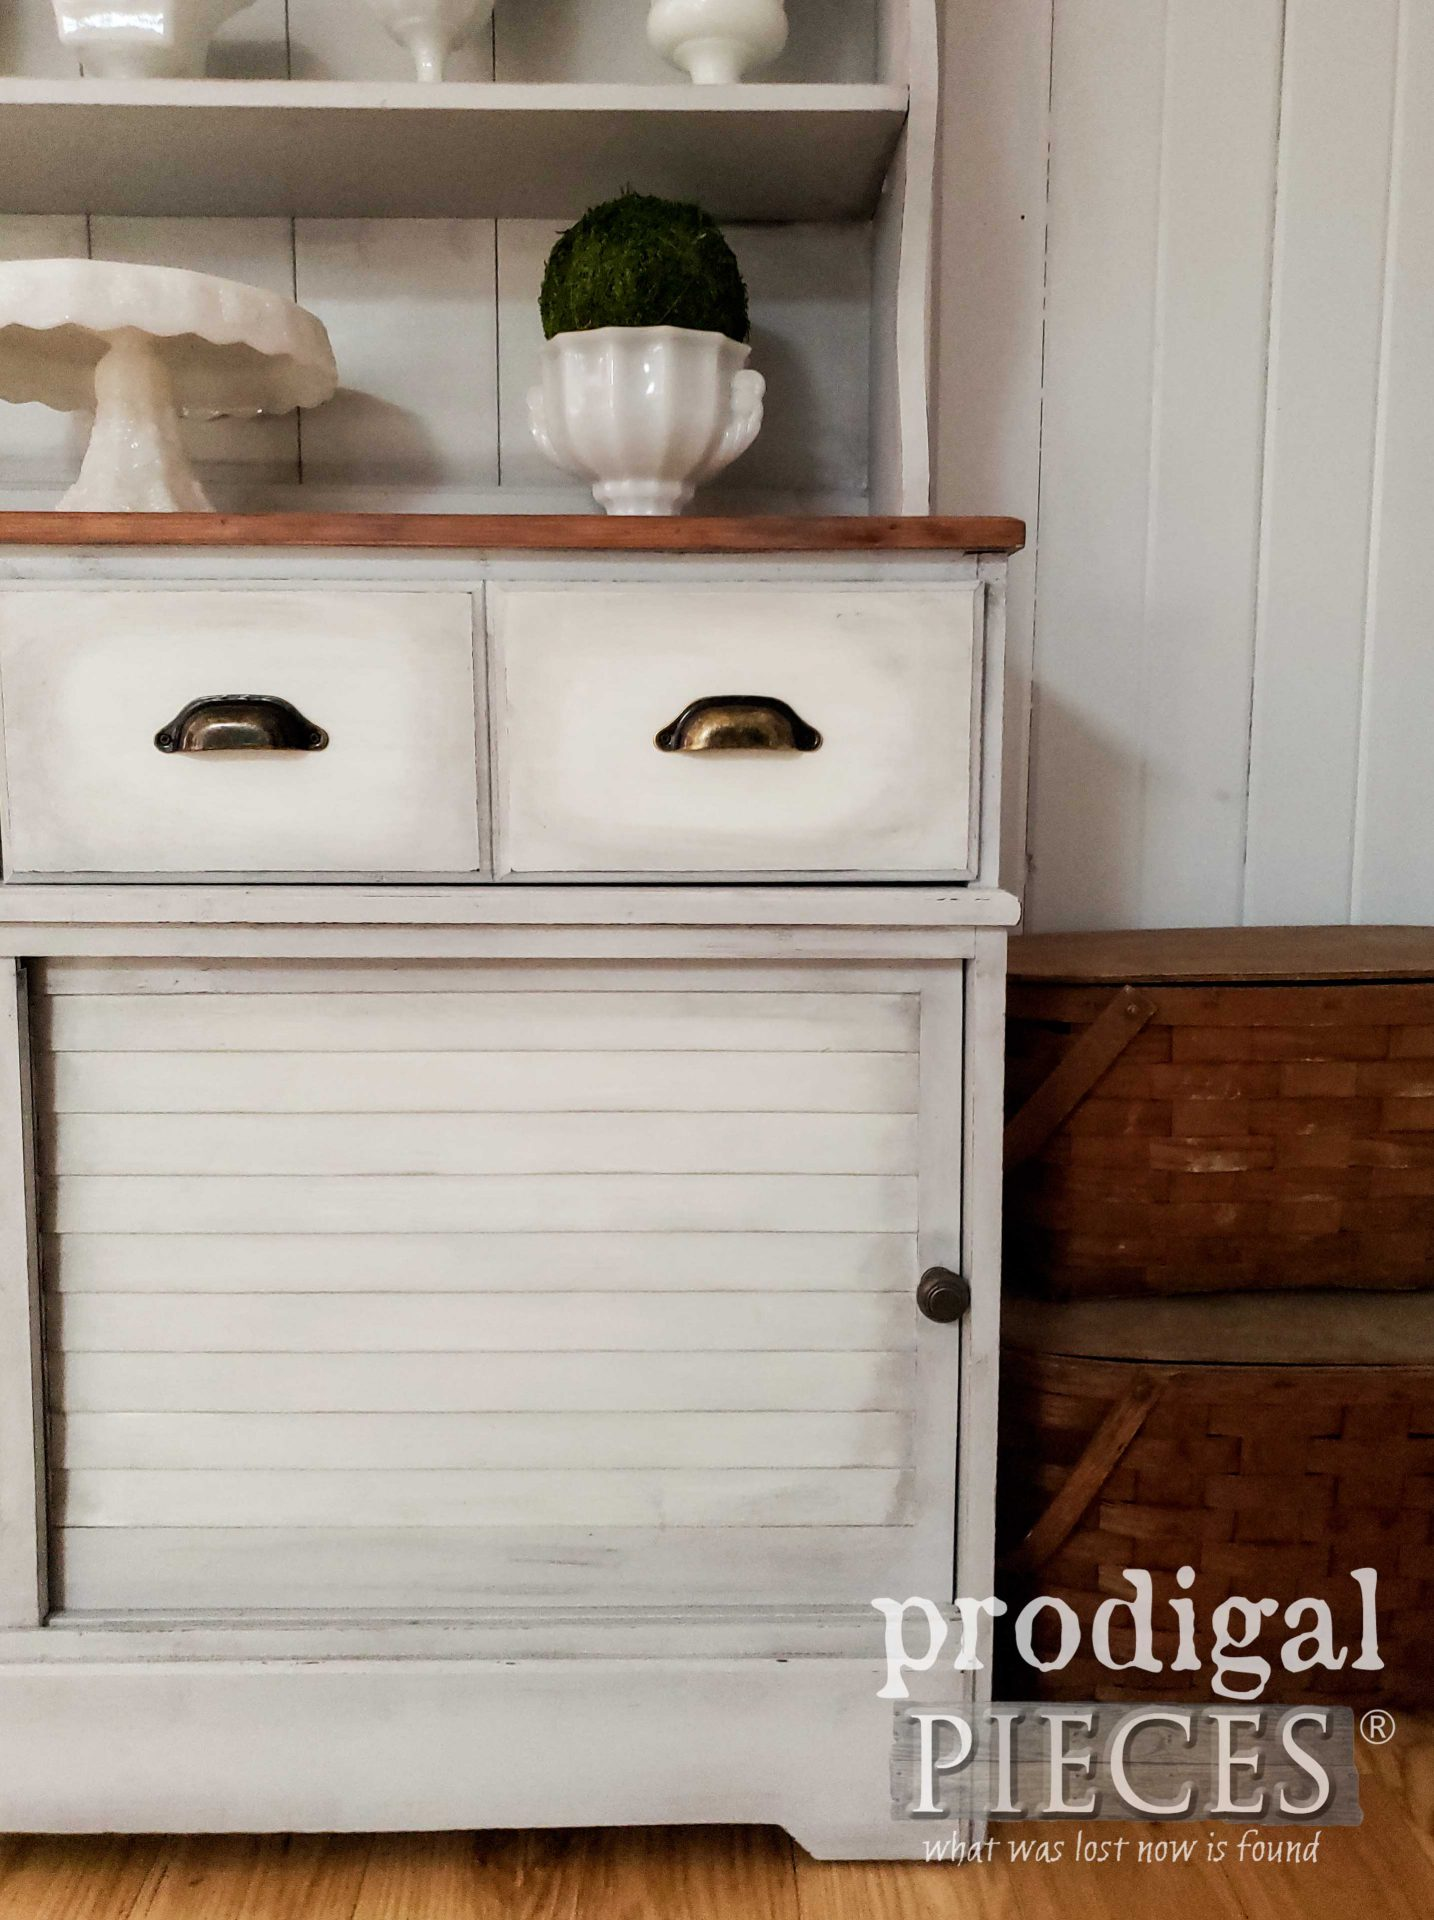 Farmhouse Kitchen Hutch with Scrubbed Pine Top by Larissa of Prodigal Pieces | prodigalpieces.com #prodigalpieces #home #diy #farmhouse #furniture #kitchen #homedecor